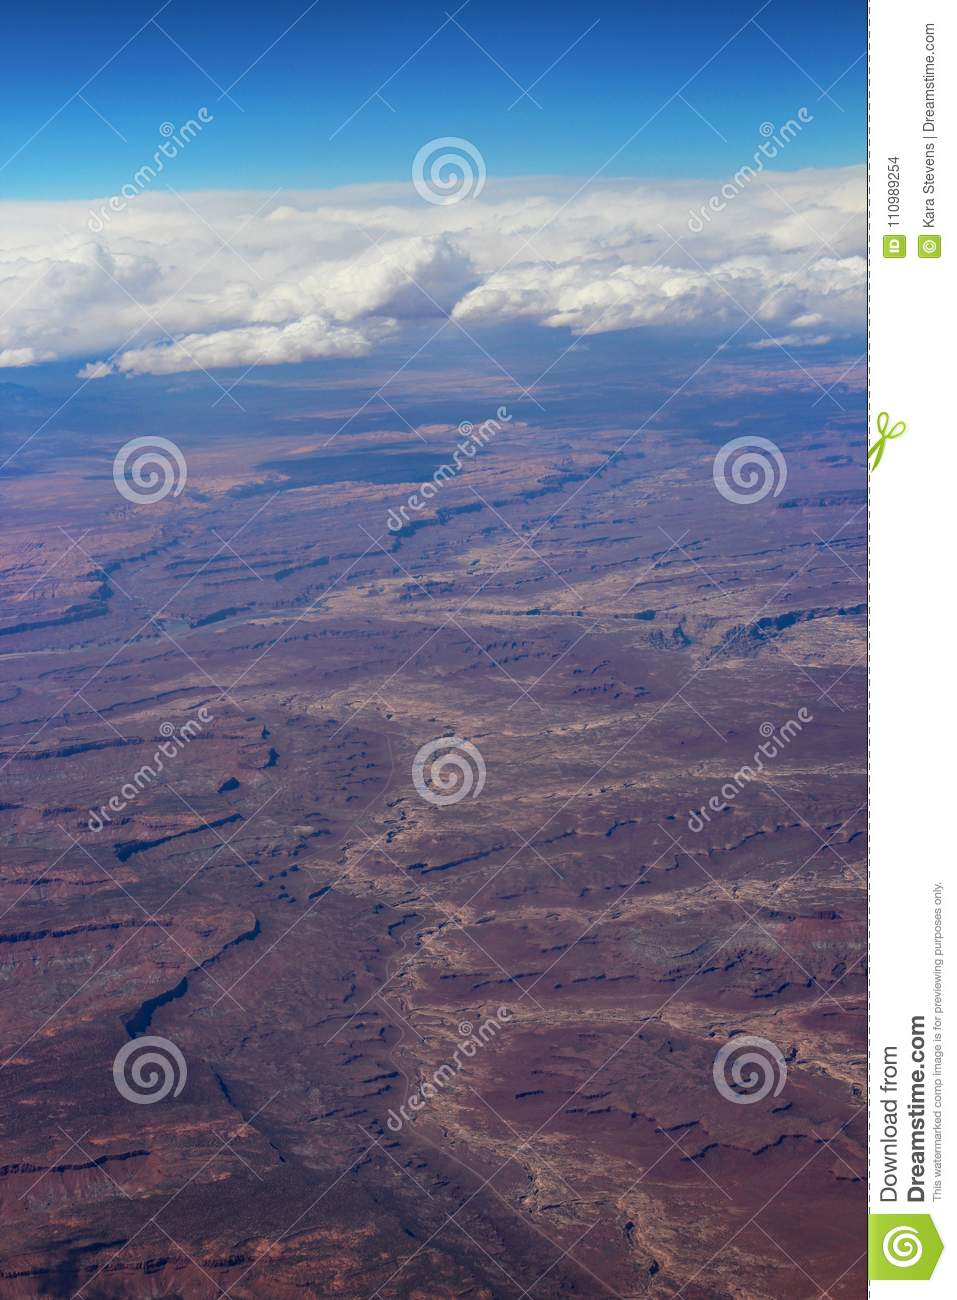 Flight Over Clouds And Canyons With View Of Curvature Of The Earth